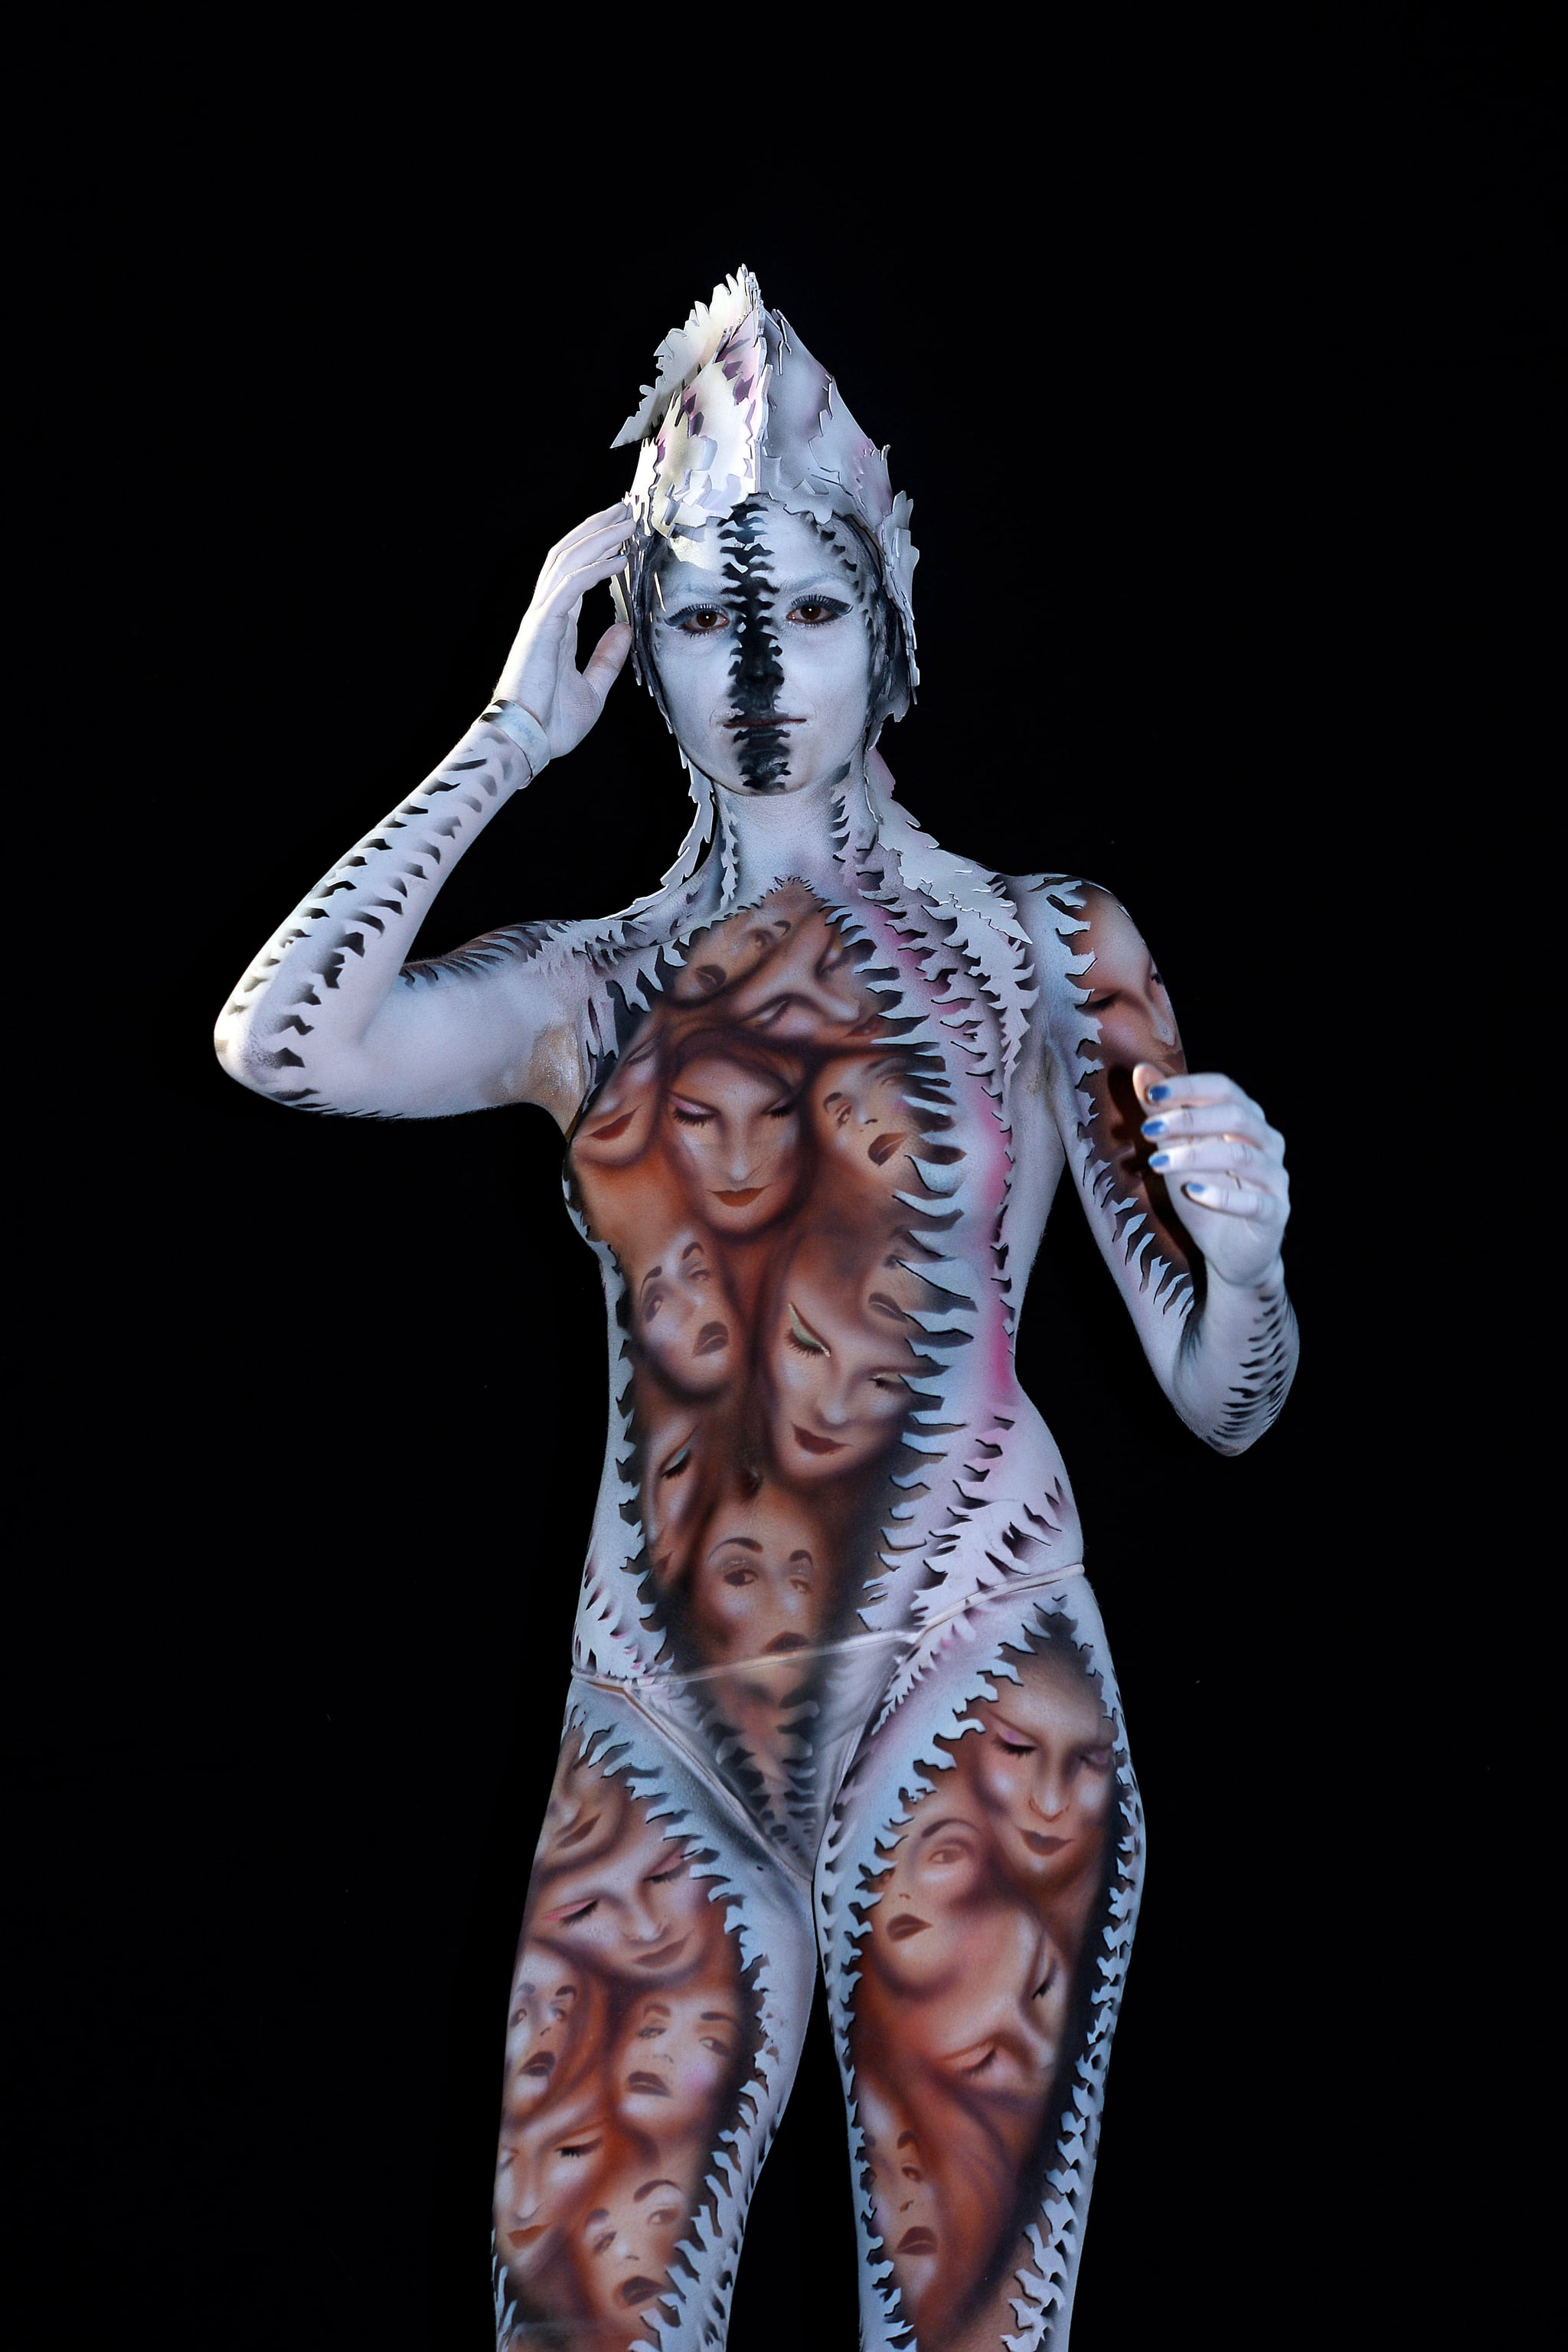 World Bodypainting Festival Pictures Popsugar Beauty